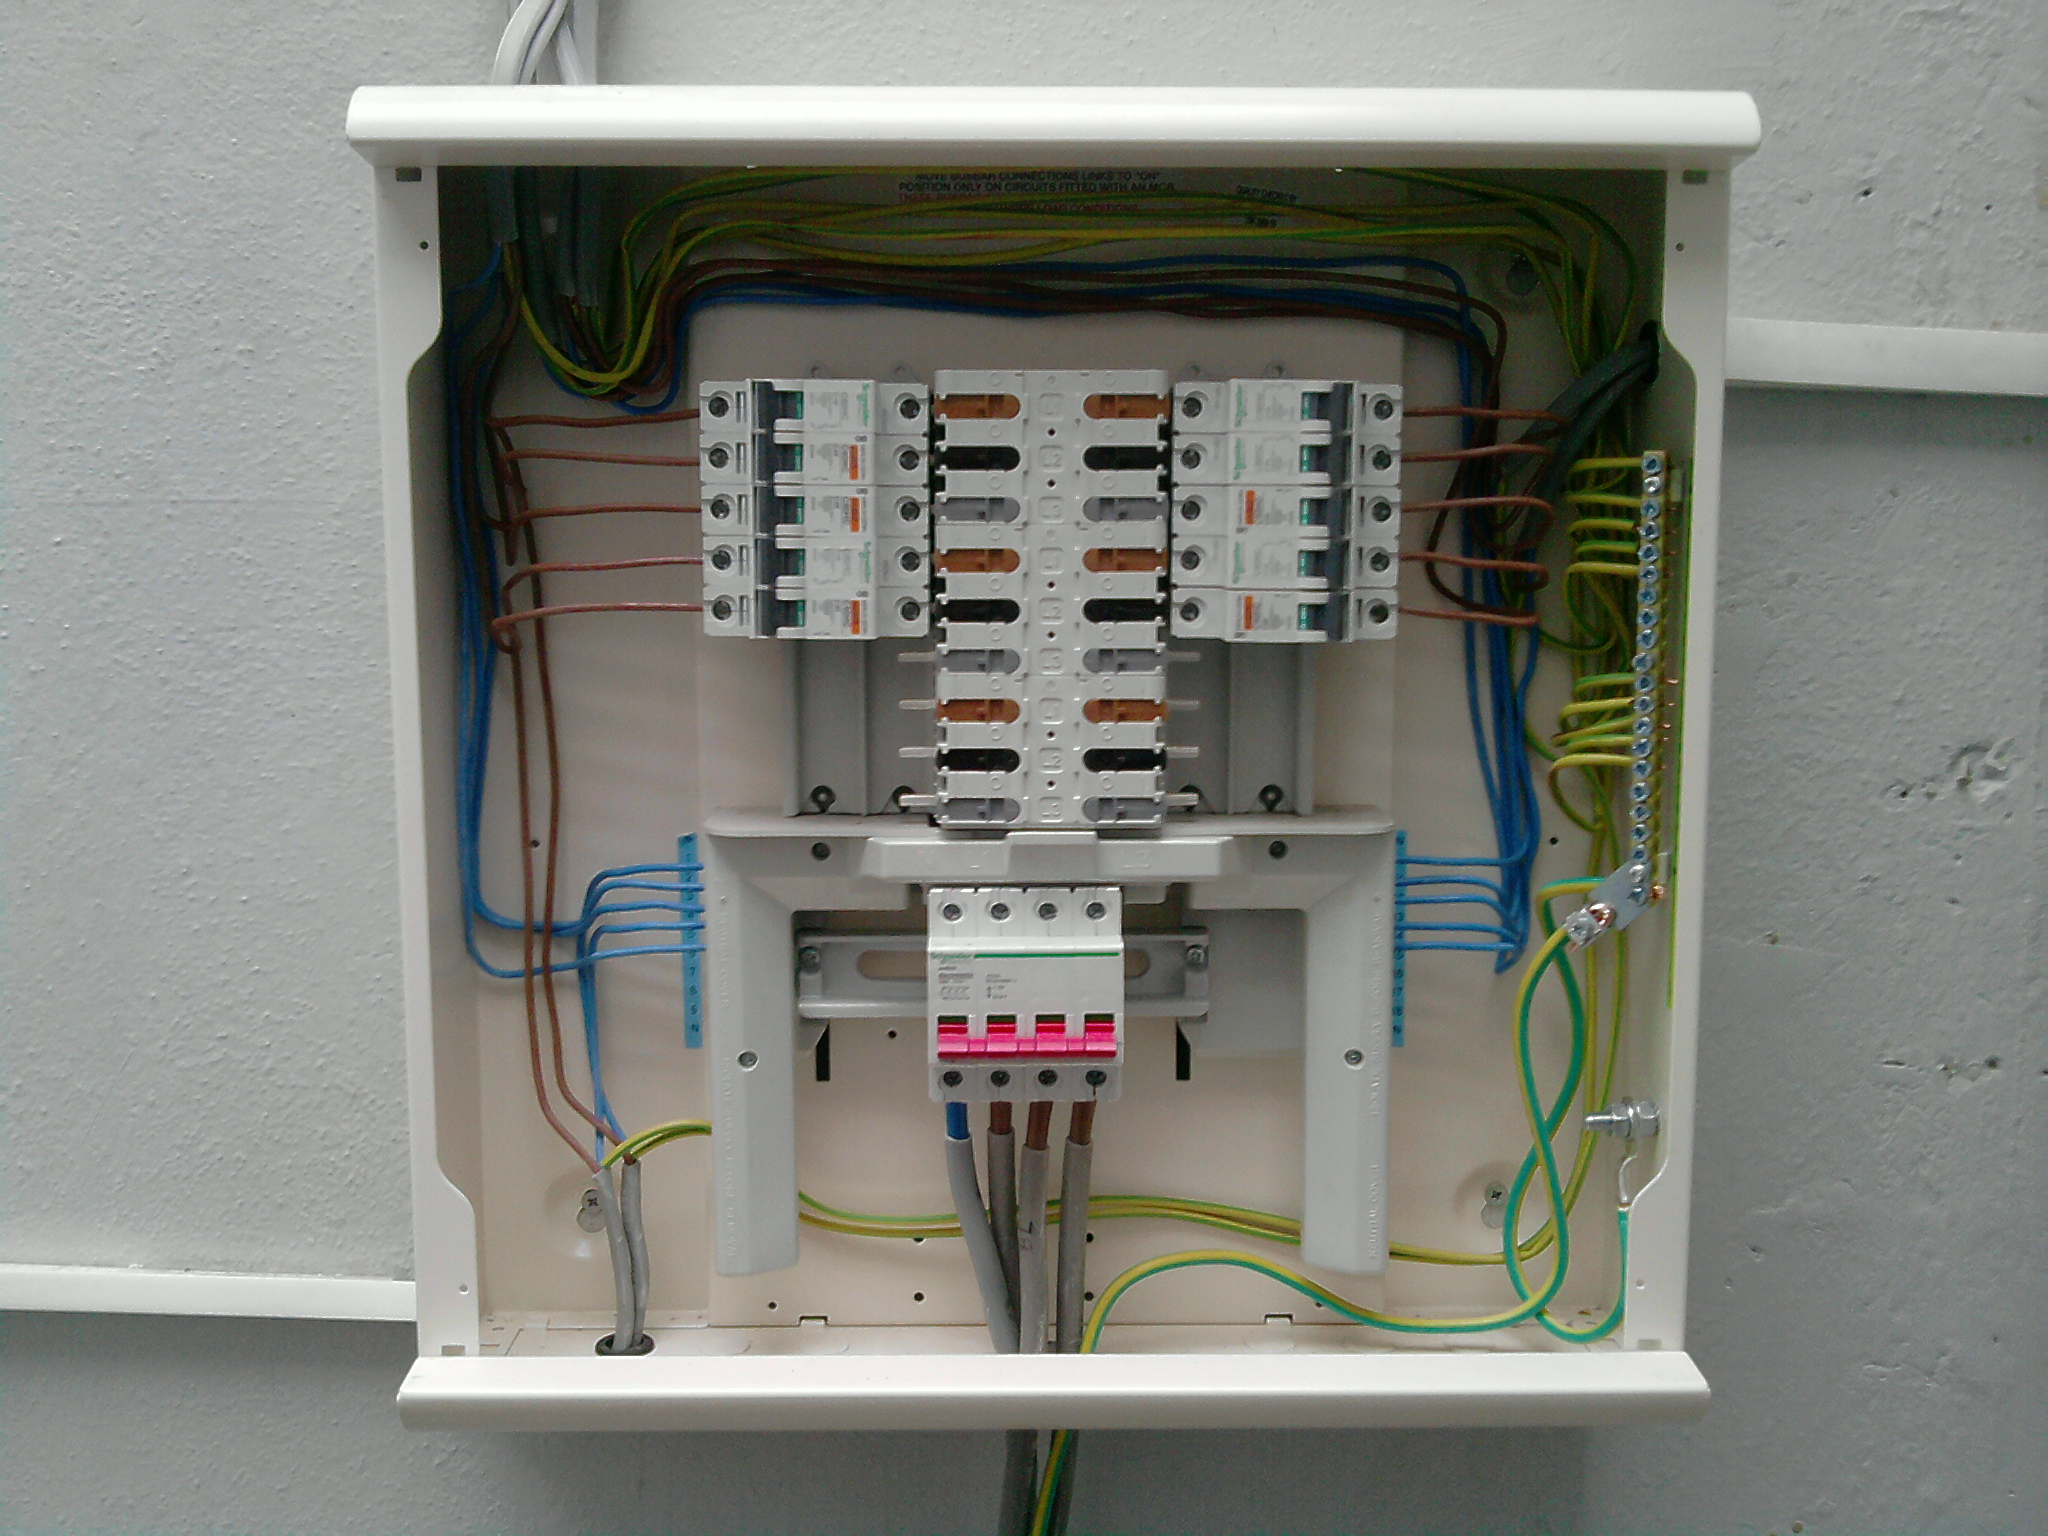 Whats Involved In Rewiring likewise Ch9 Fire Alarm And Detectors additionally Fire Alarm Wiring Diagram Circuits Nfpa 72 Fire Alarm Wiring Diagram in addition Whole House Wiring Basics further Electrical Symbol List. on commercial fire alarm wiring